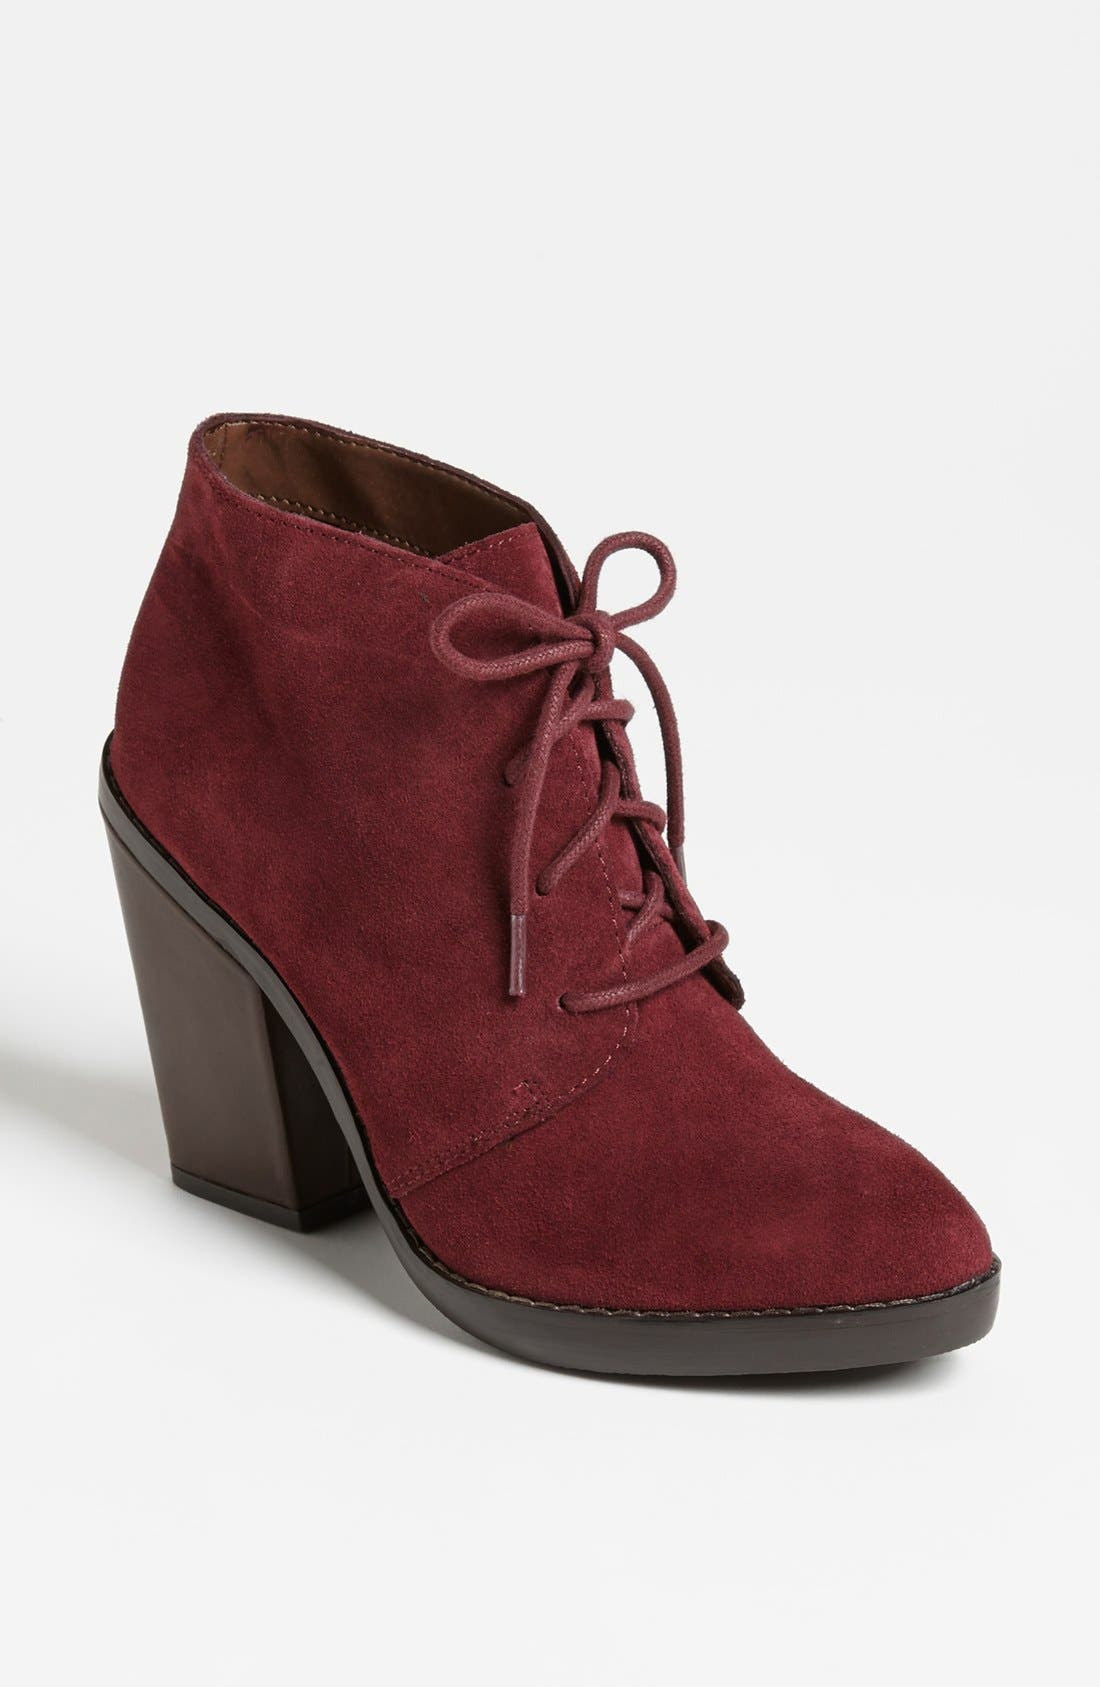 Alternate Image 1 Selected - Steve Madden 'Jayson' Bootie